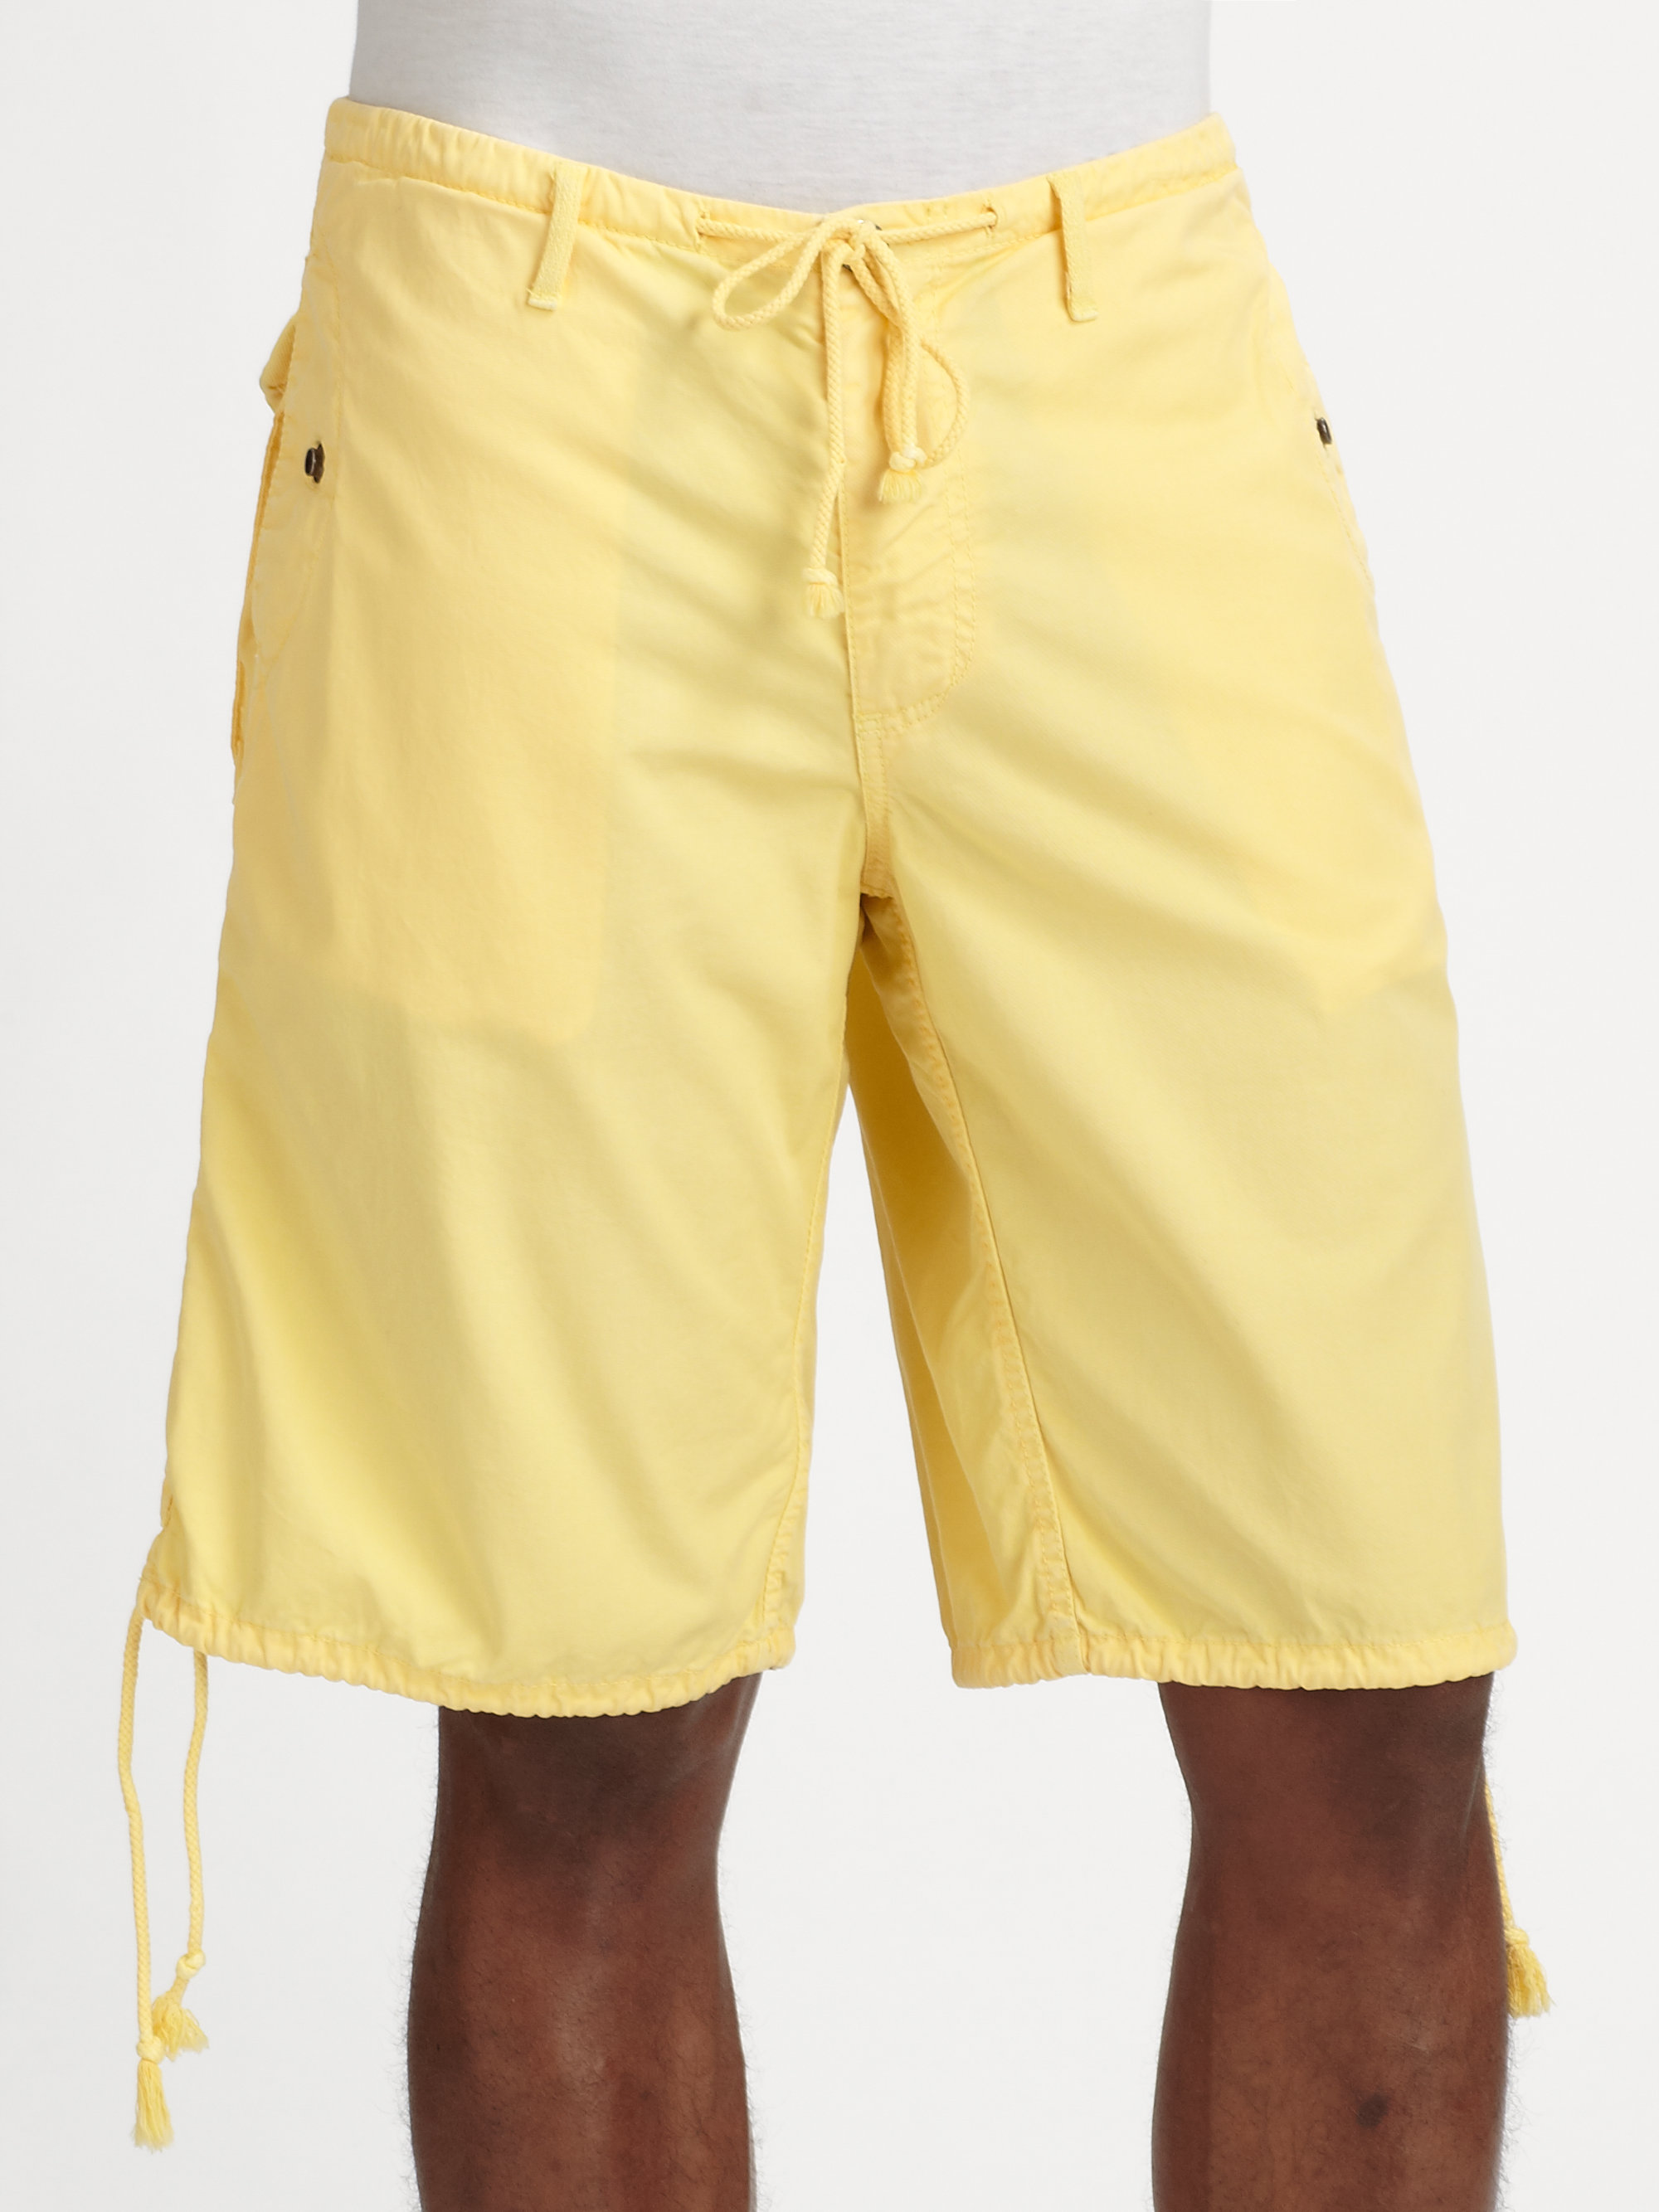 Our selection of preppy mens shorts come in different styles and patterns. Enjoy free shipping and find the perfect pair of shorts for your wardrobe.